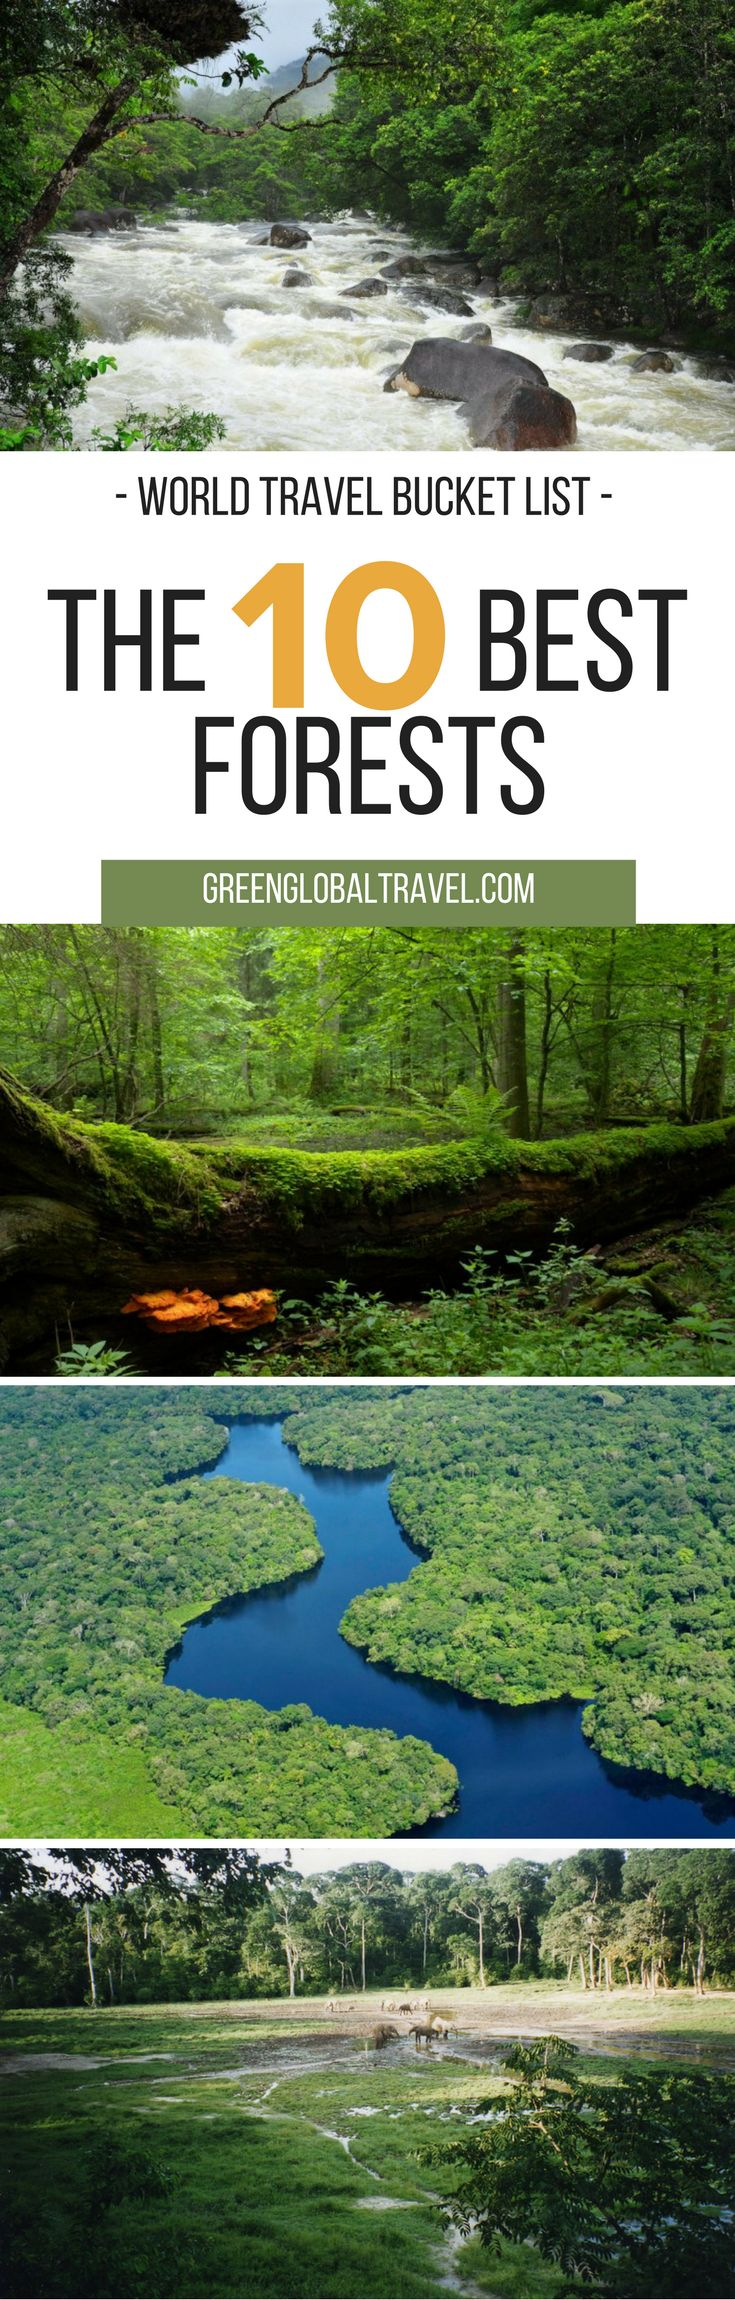 Here are our top 10 most beautiful forests for your world travel bucket list! | Amazon Rainforest | South America | Biodiversity | Bialowieza Primeval Forest | Congo Basin Forest | UNESCO | Europe | Daintree Rainforest | Australia | Forests of New Guinea